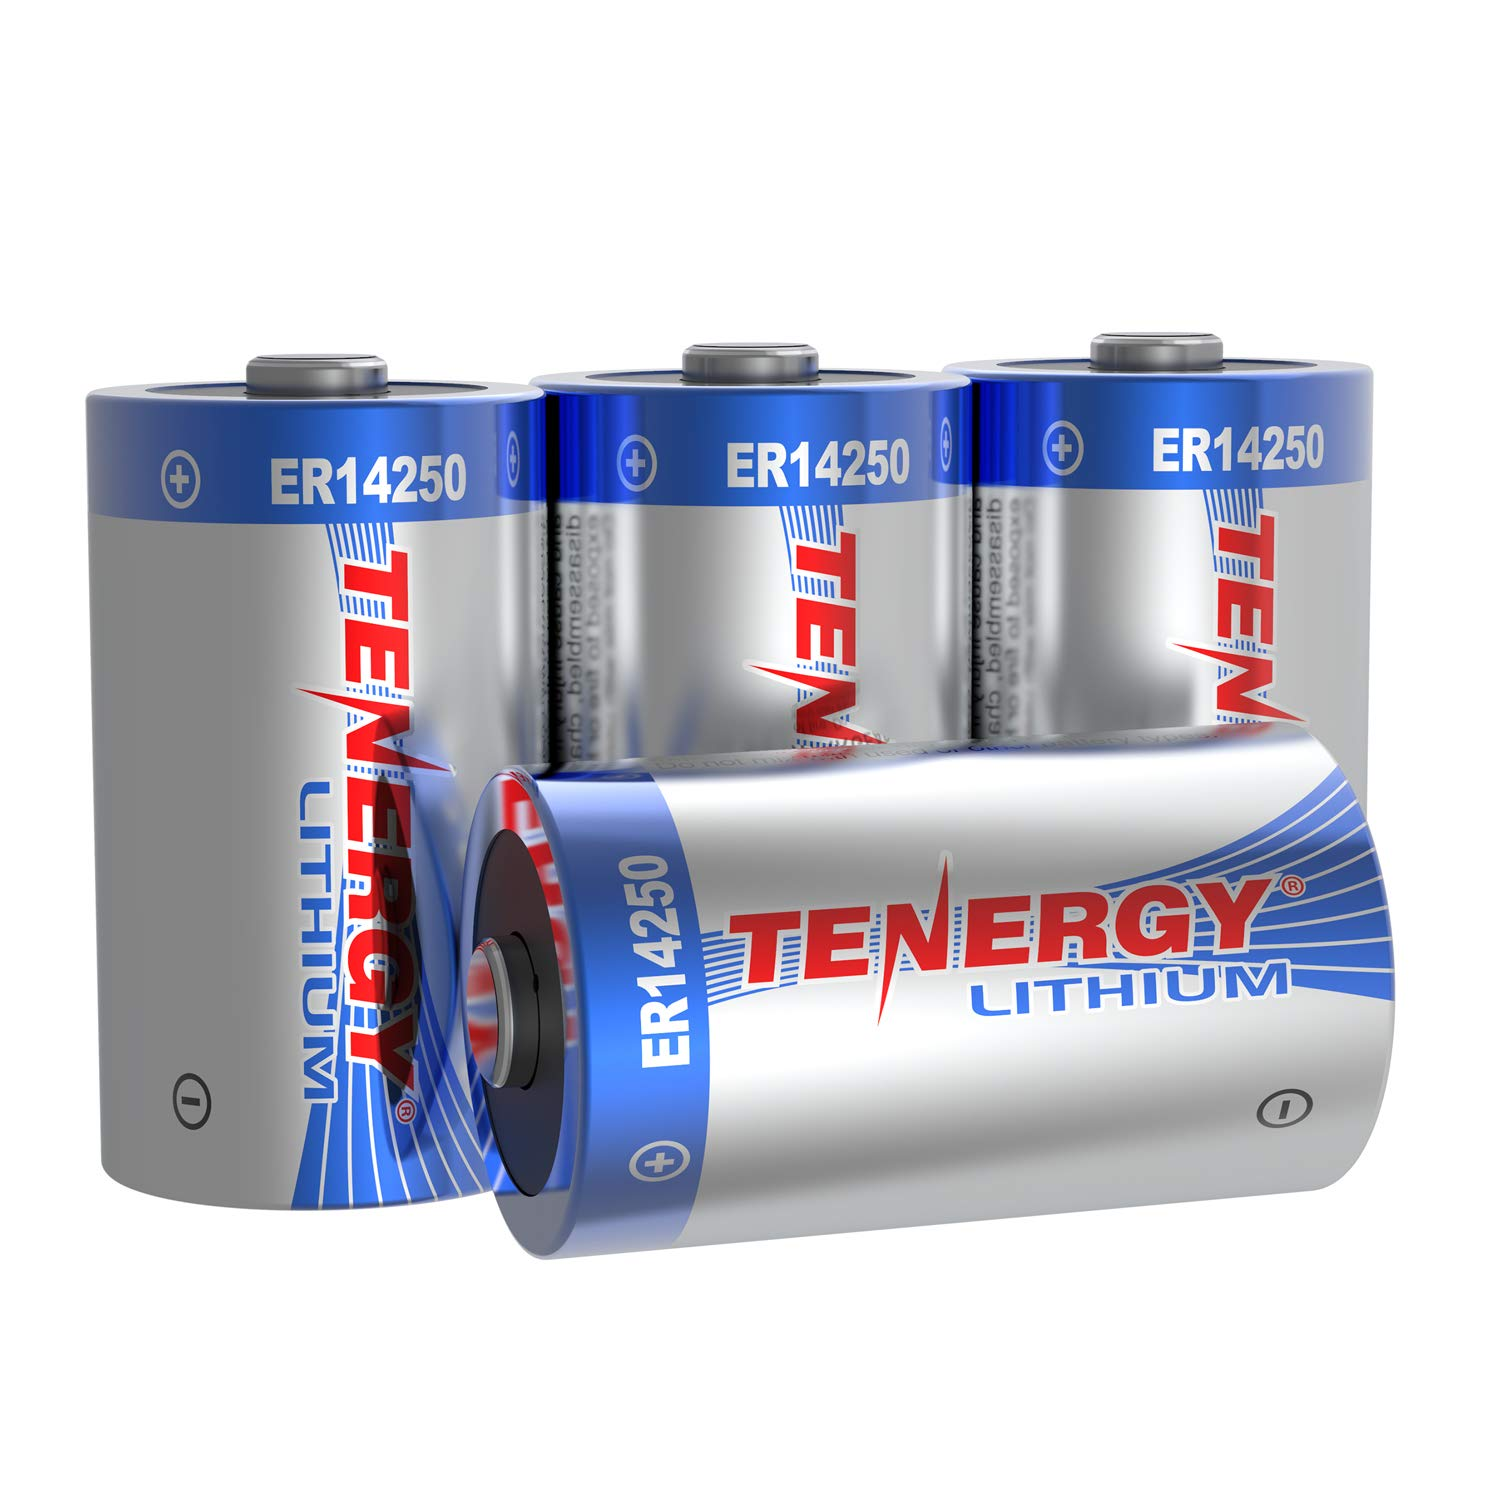 Tenergy High Capacity 3.6V 1/2 AA Lithium Battery, 1200mAh ER14250 Non-Rechargeable Batteries for Window Sensors, Alarm Systems, Home Security Sensors, Utility Meters, UL Certified, 4 Pack